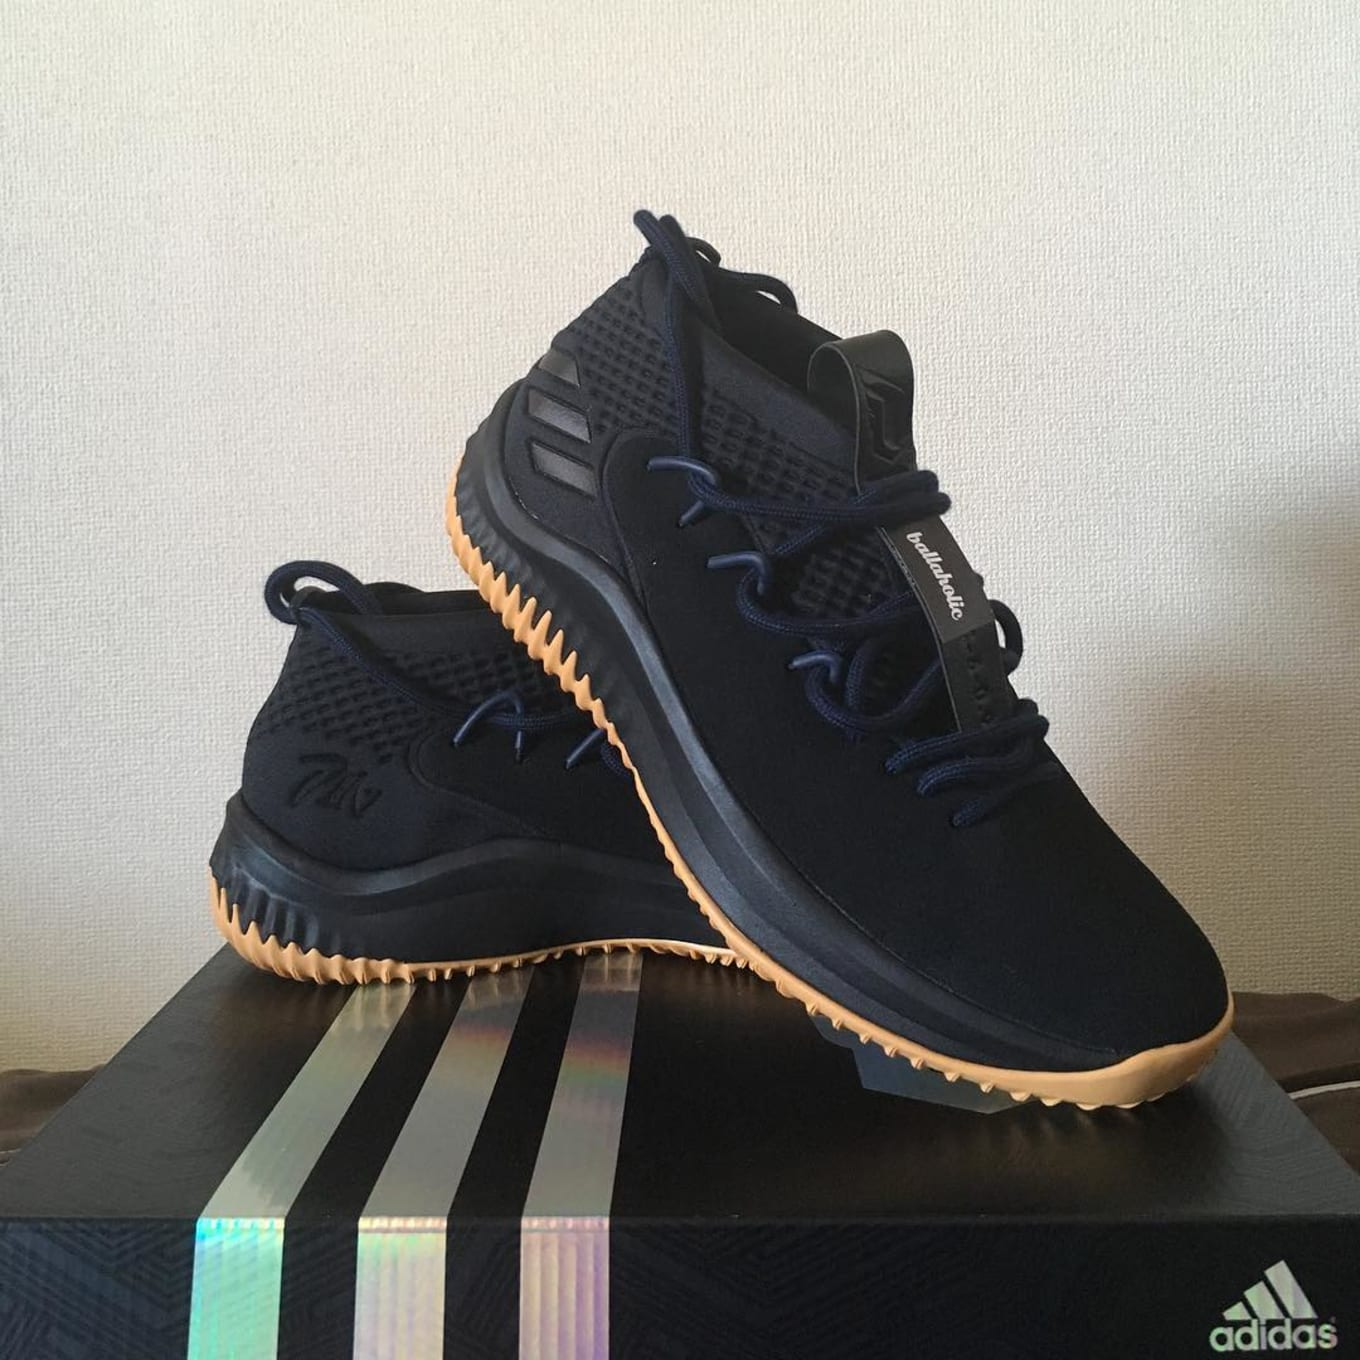 low priced 7f5ea 20c82 miAdidas Dame 4 Designs  Sole Collector